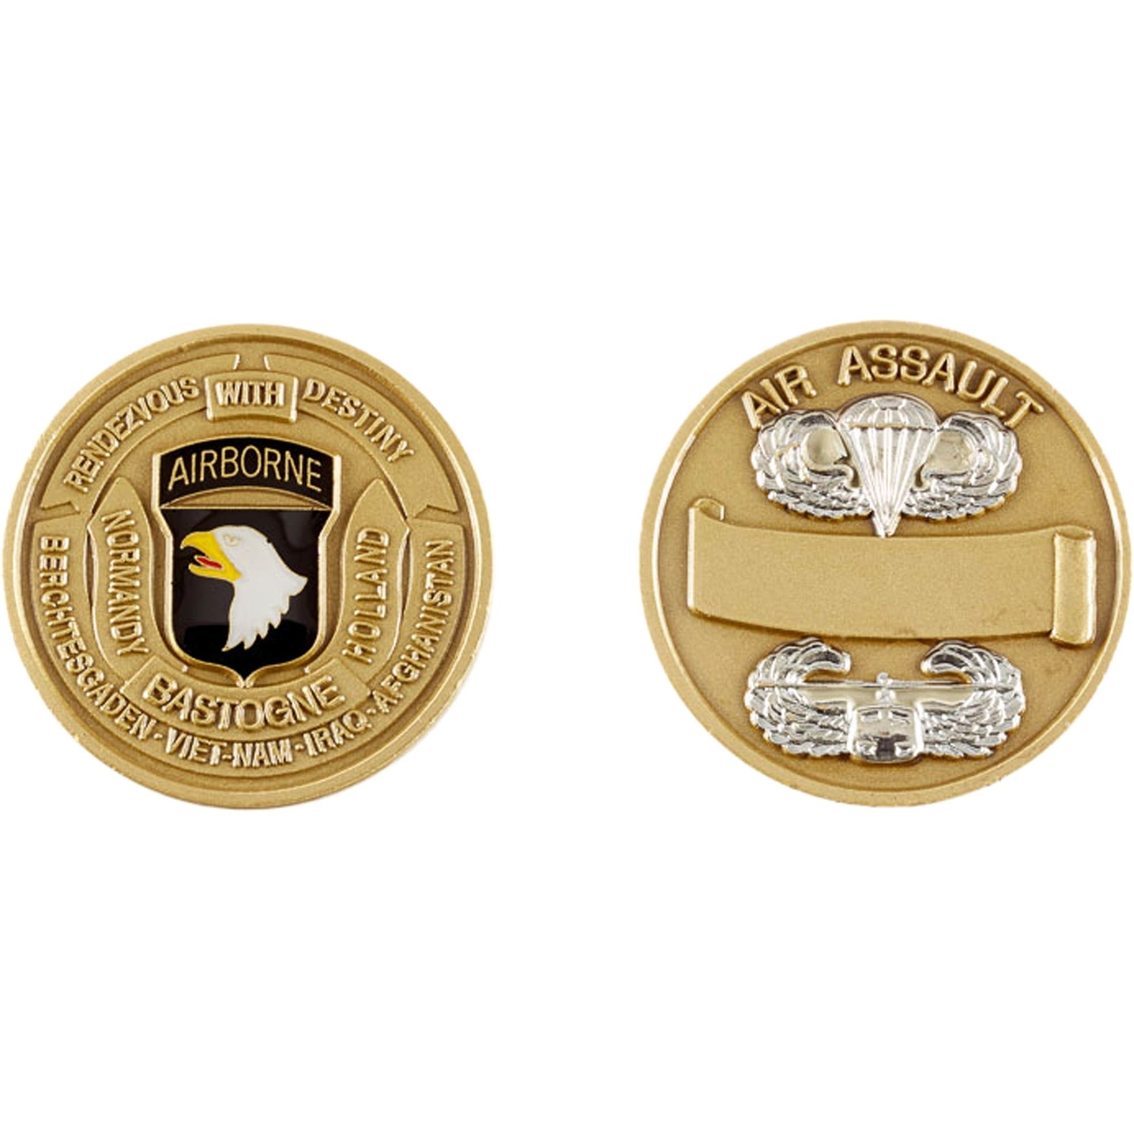 Challenge Coin 101st Airborne Division Coin   Coins & Cases   Gifts